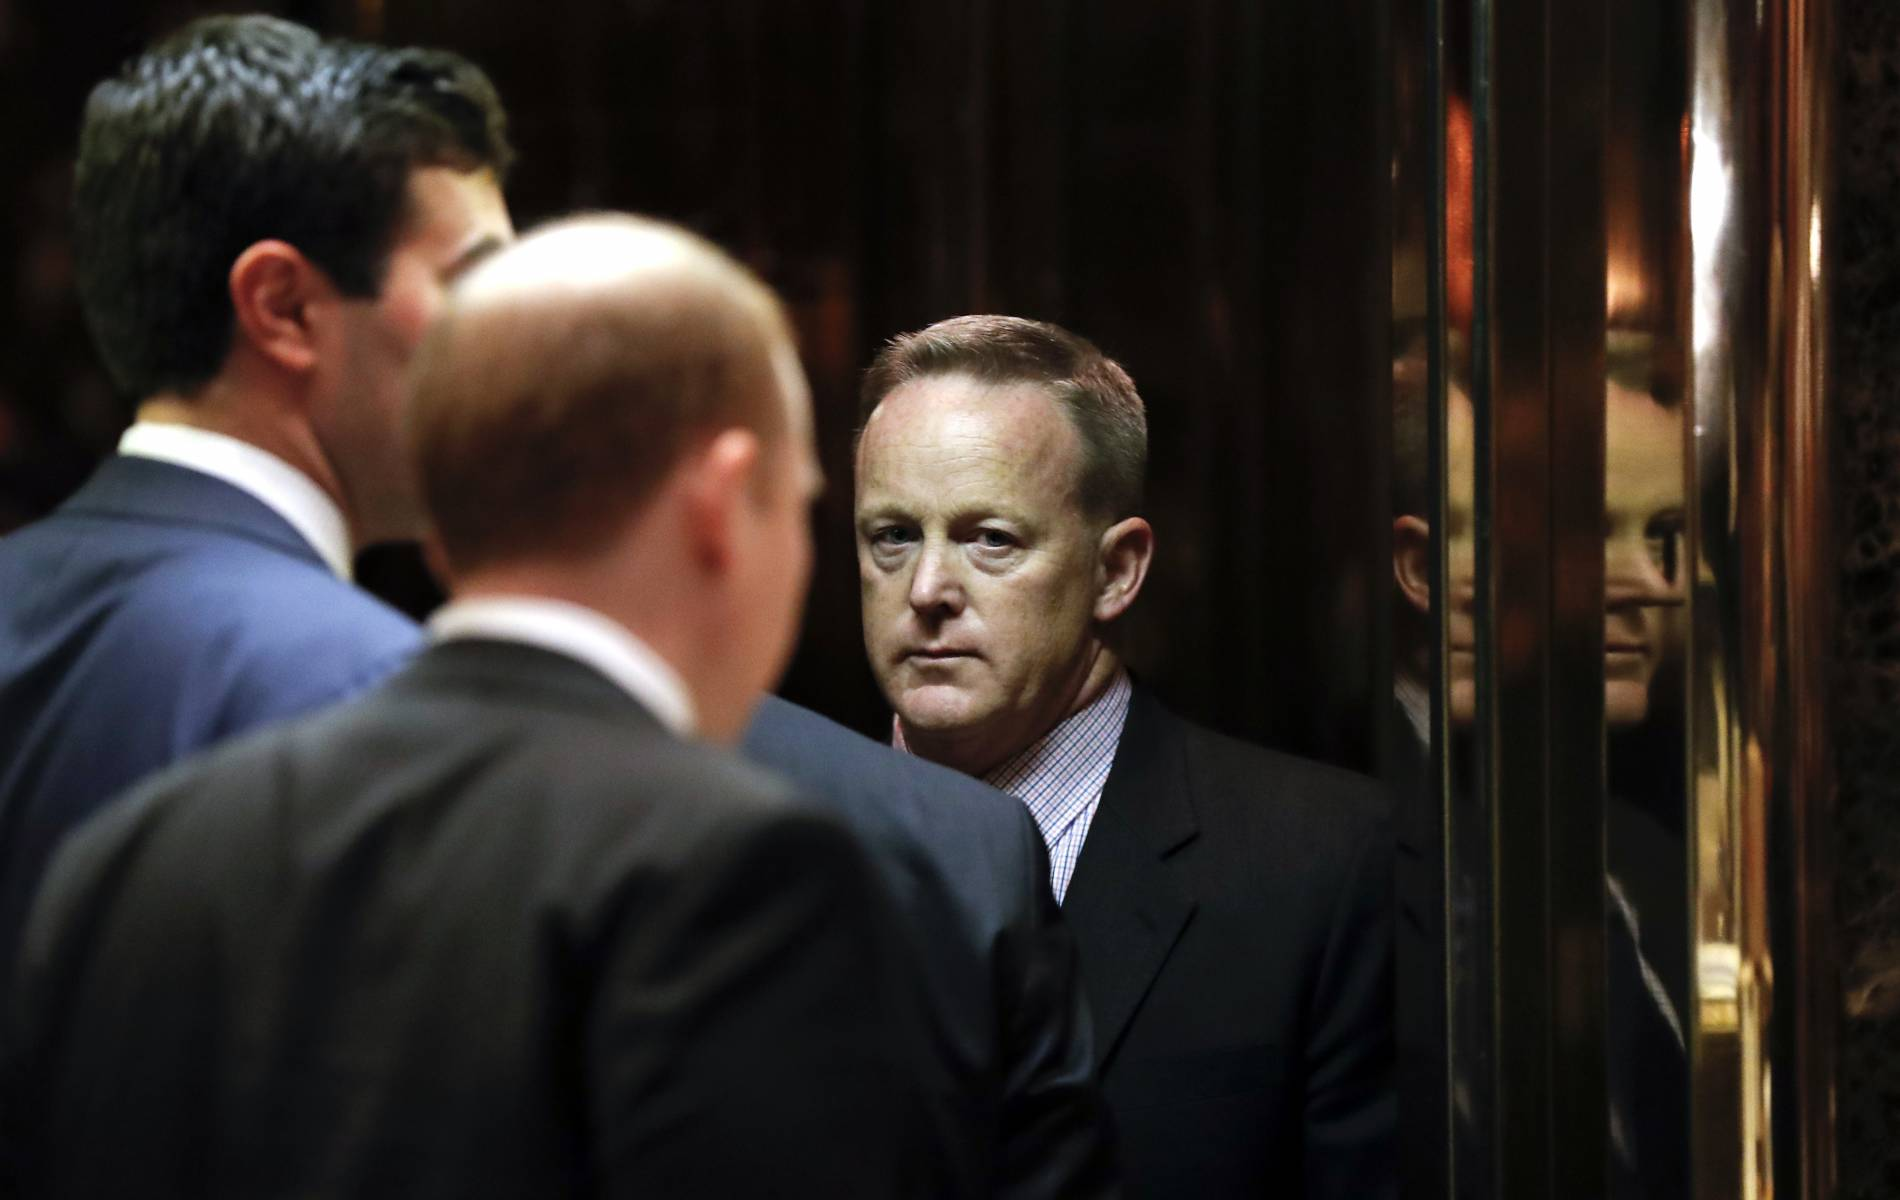 Journalists stand up to Sean Spicer, Donald Trump's press ...